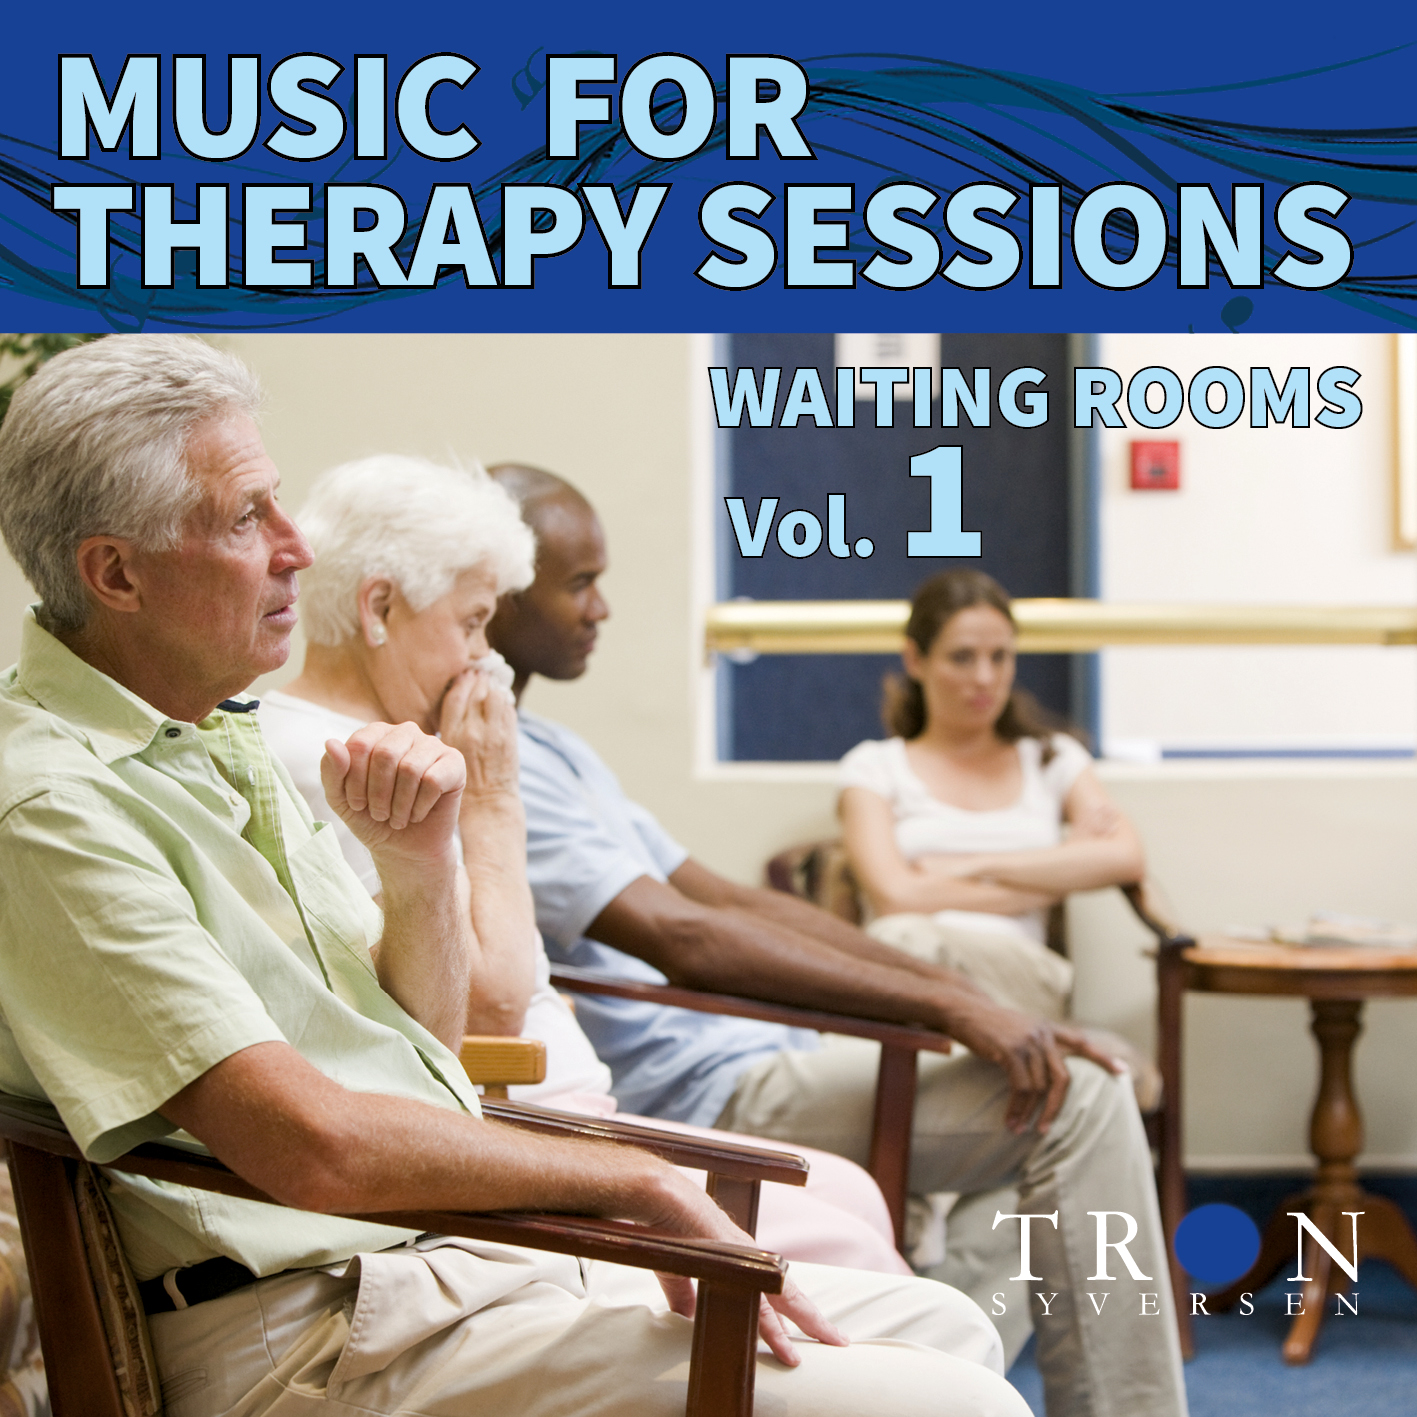 MUSIC FOR THERAPY - WAITING ROOMS vol 1 - DIGITAL DOWNLOAD